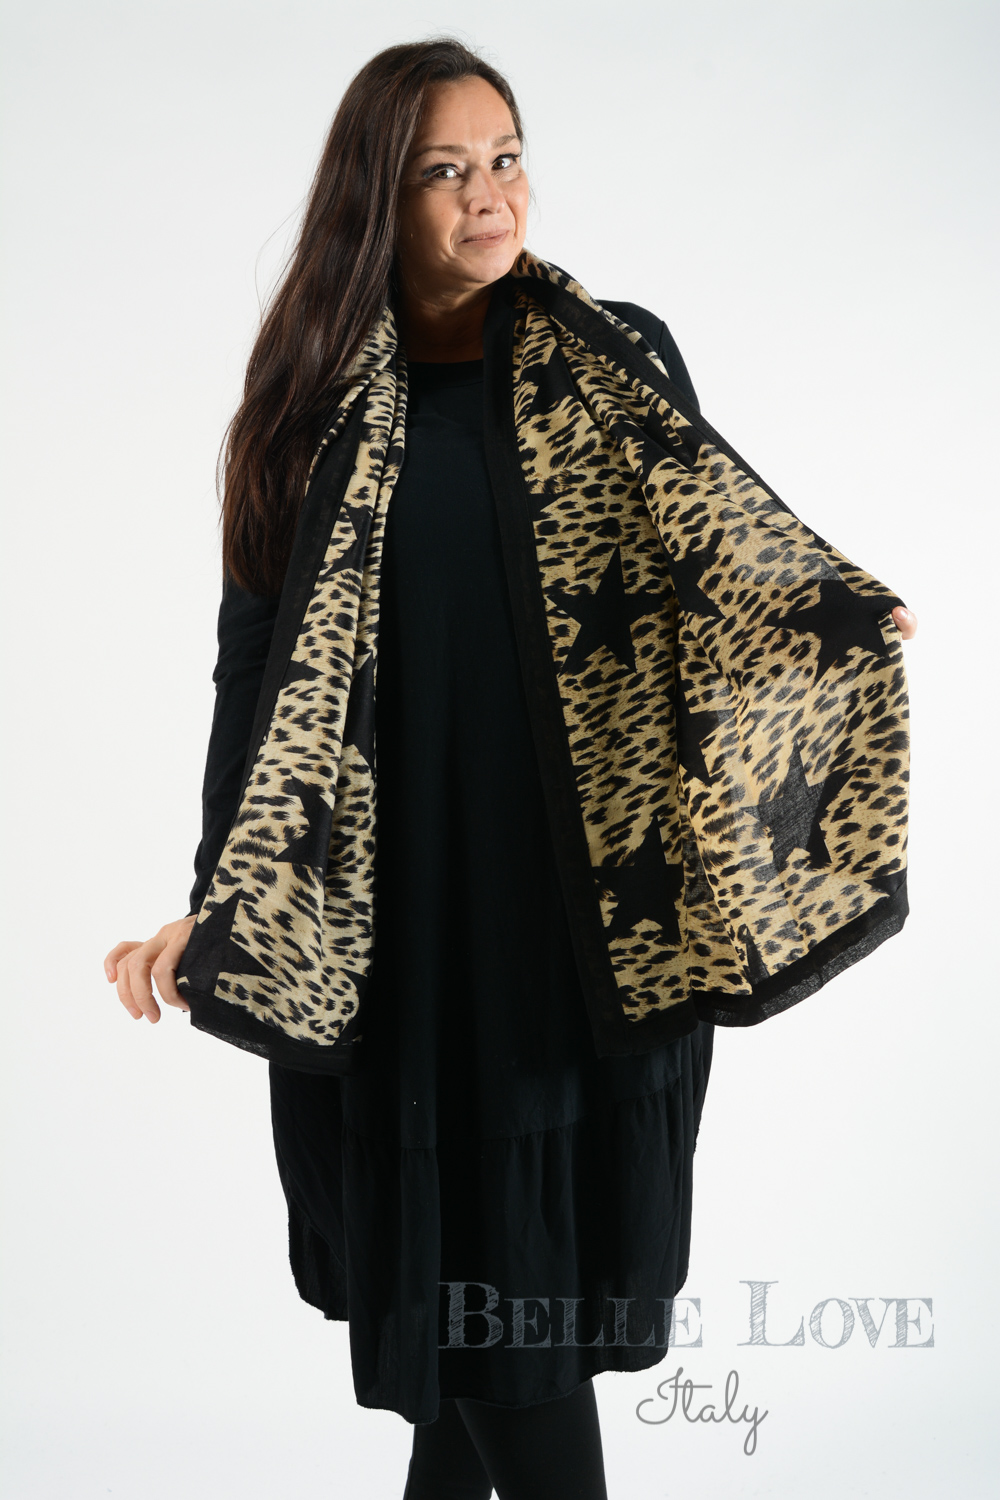 Belle Love Italy Leopard Print Star Scarf